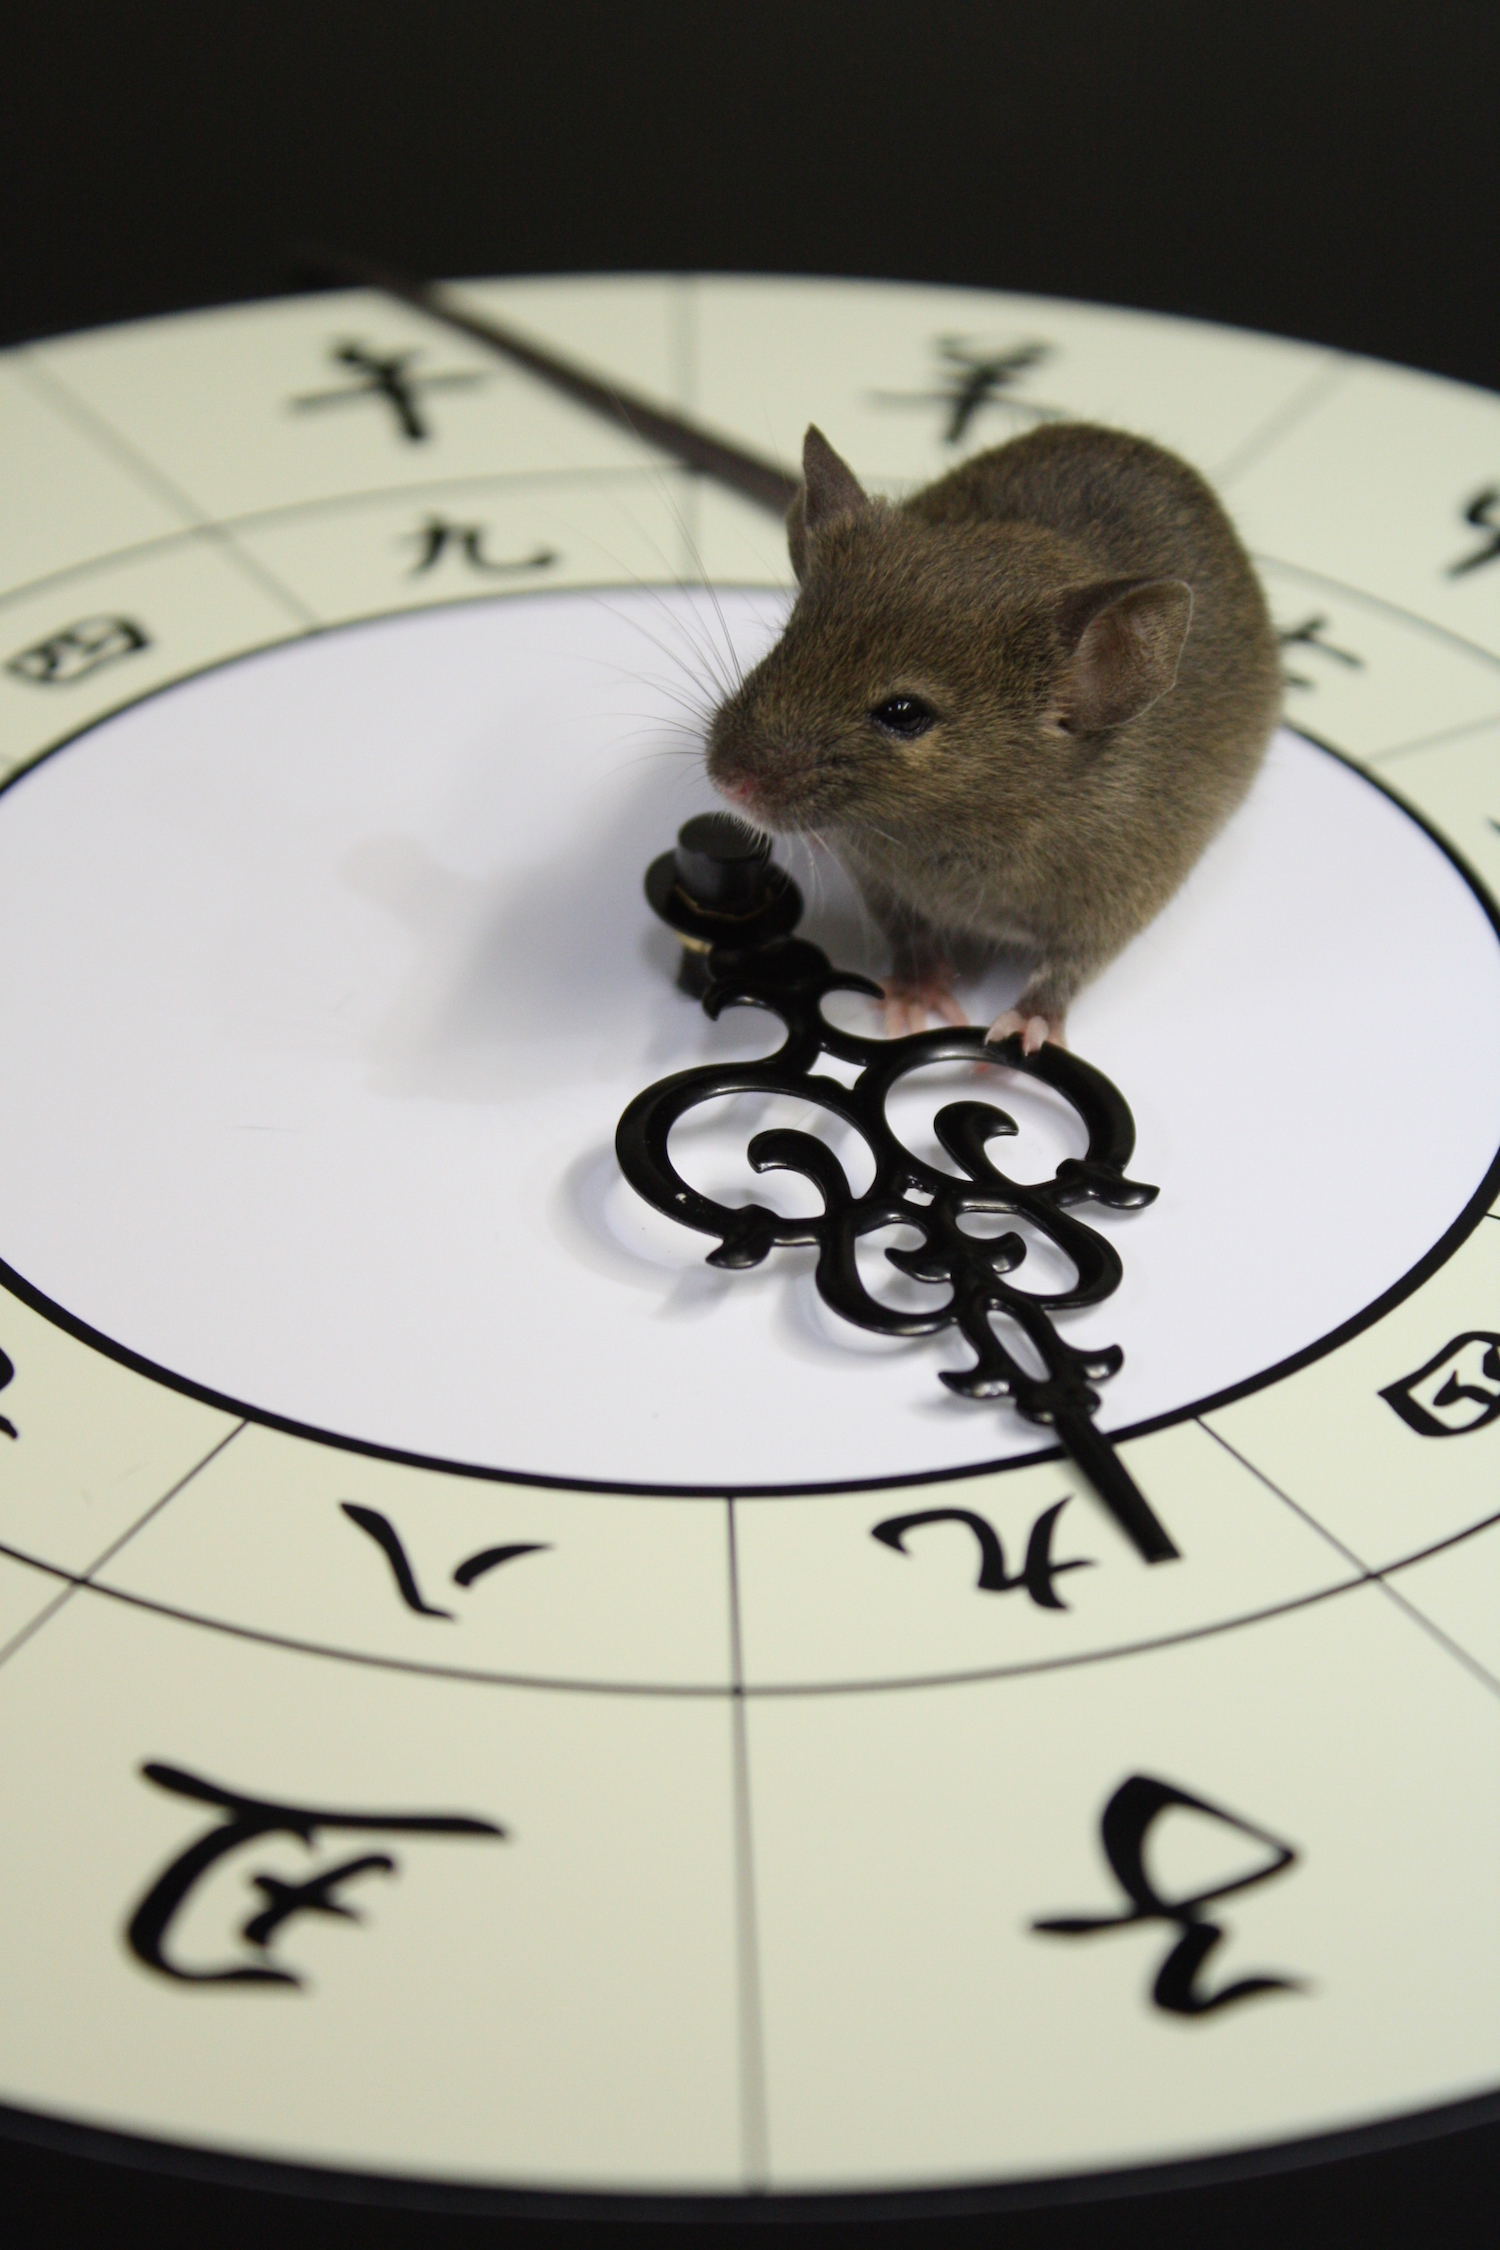 Mouse_Clock.jpeg